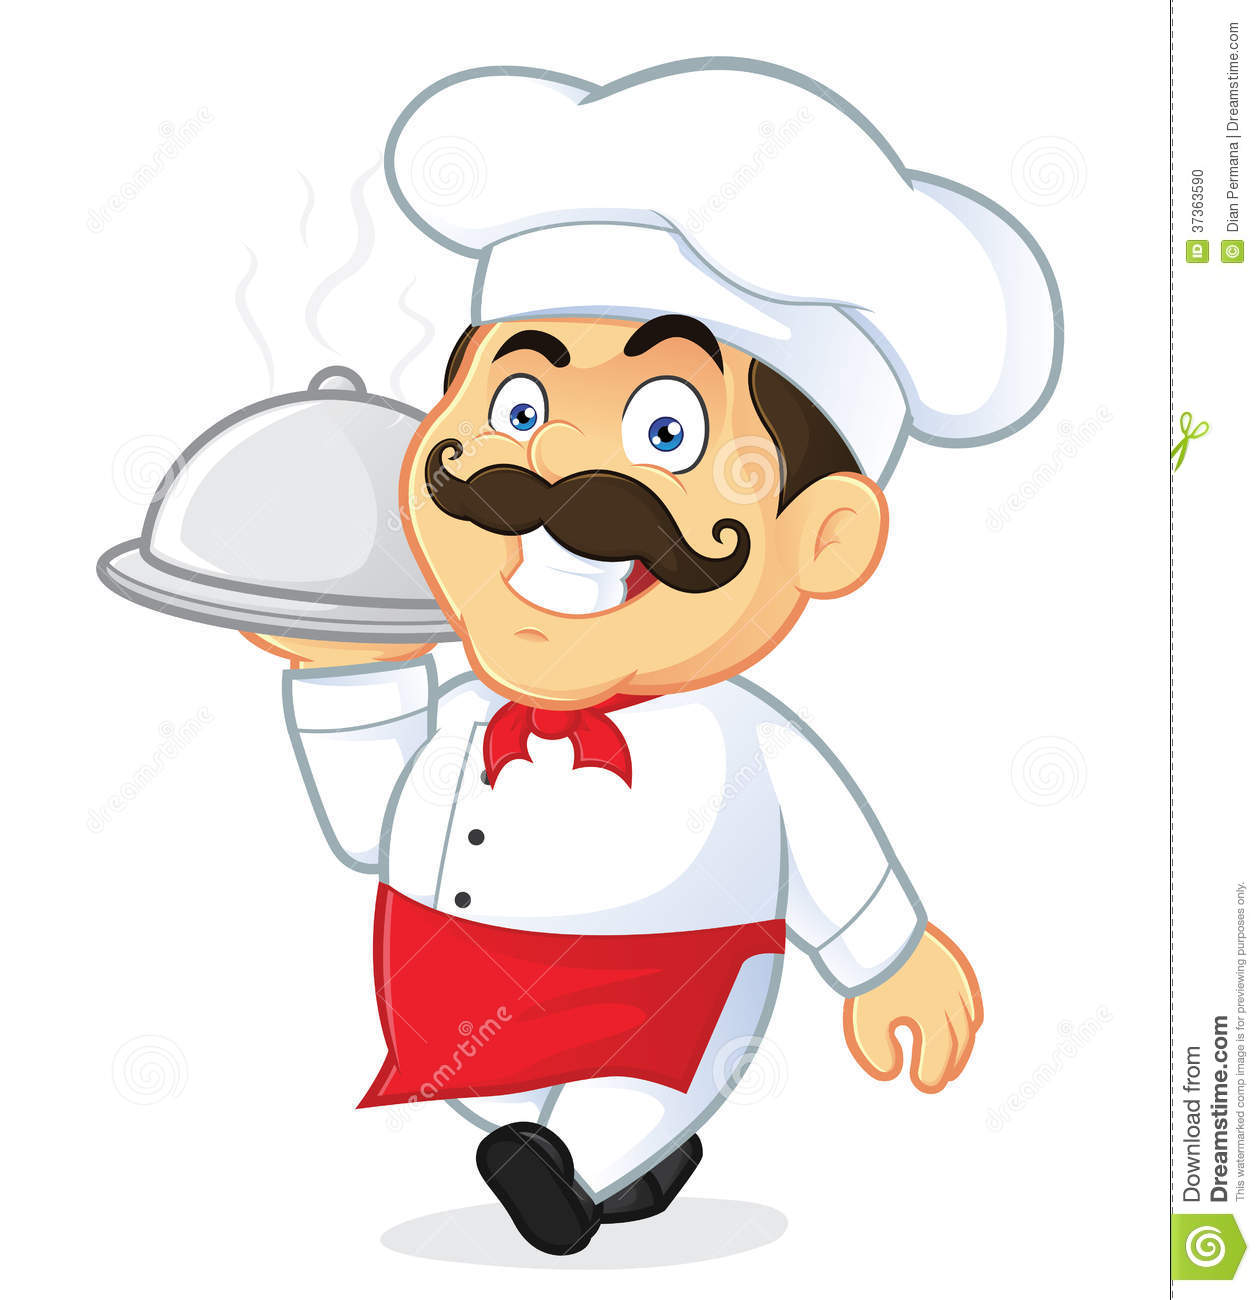 Catering chef clipart free library Catering chef clipart - ClipartFest free library